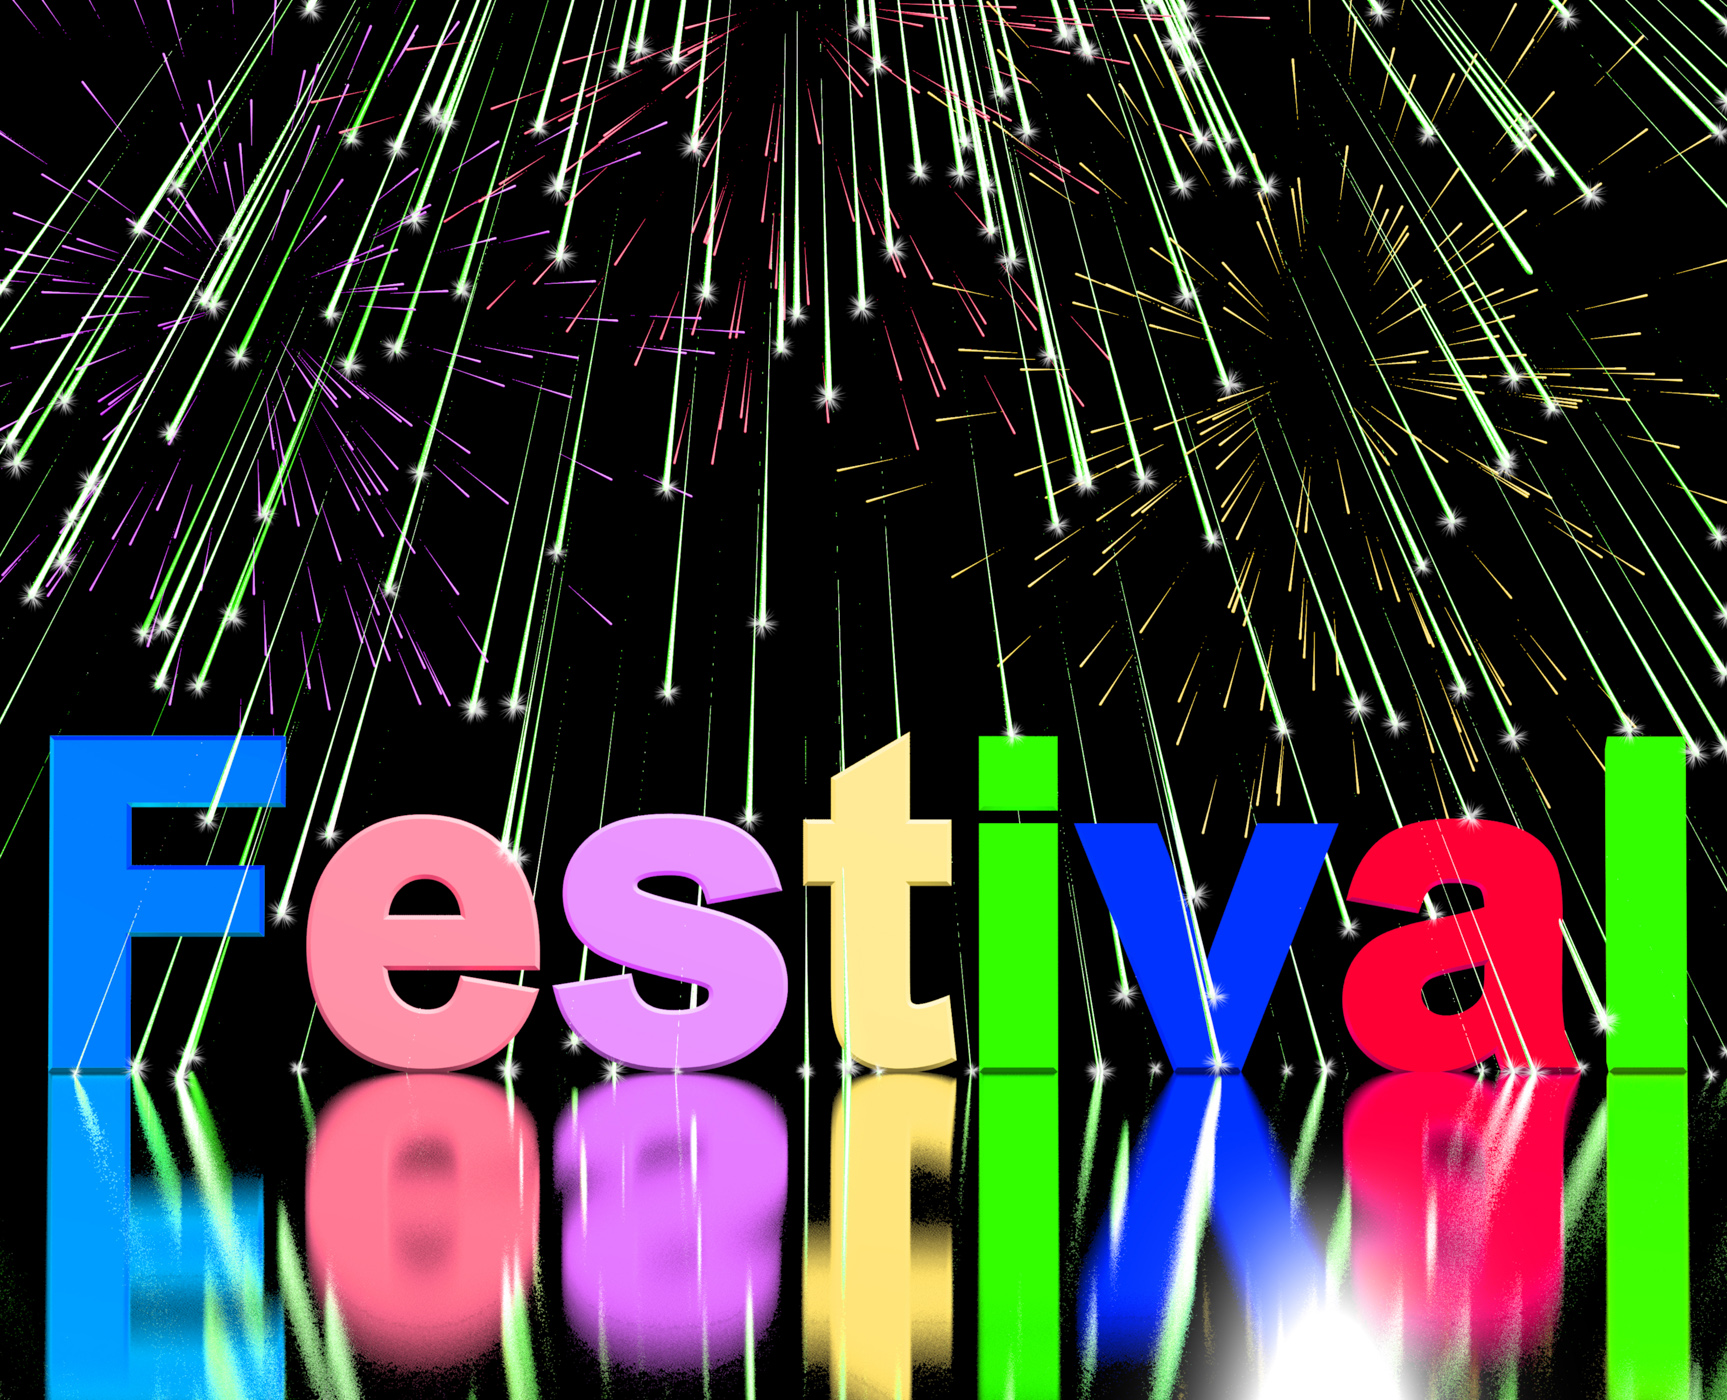 Festival word with fireworks showing entertainment event or party photo